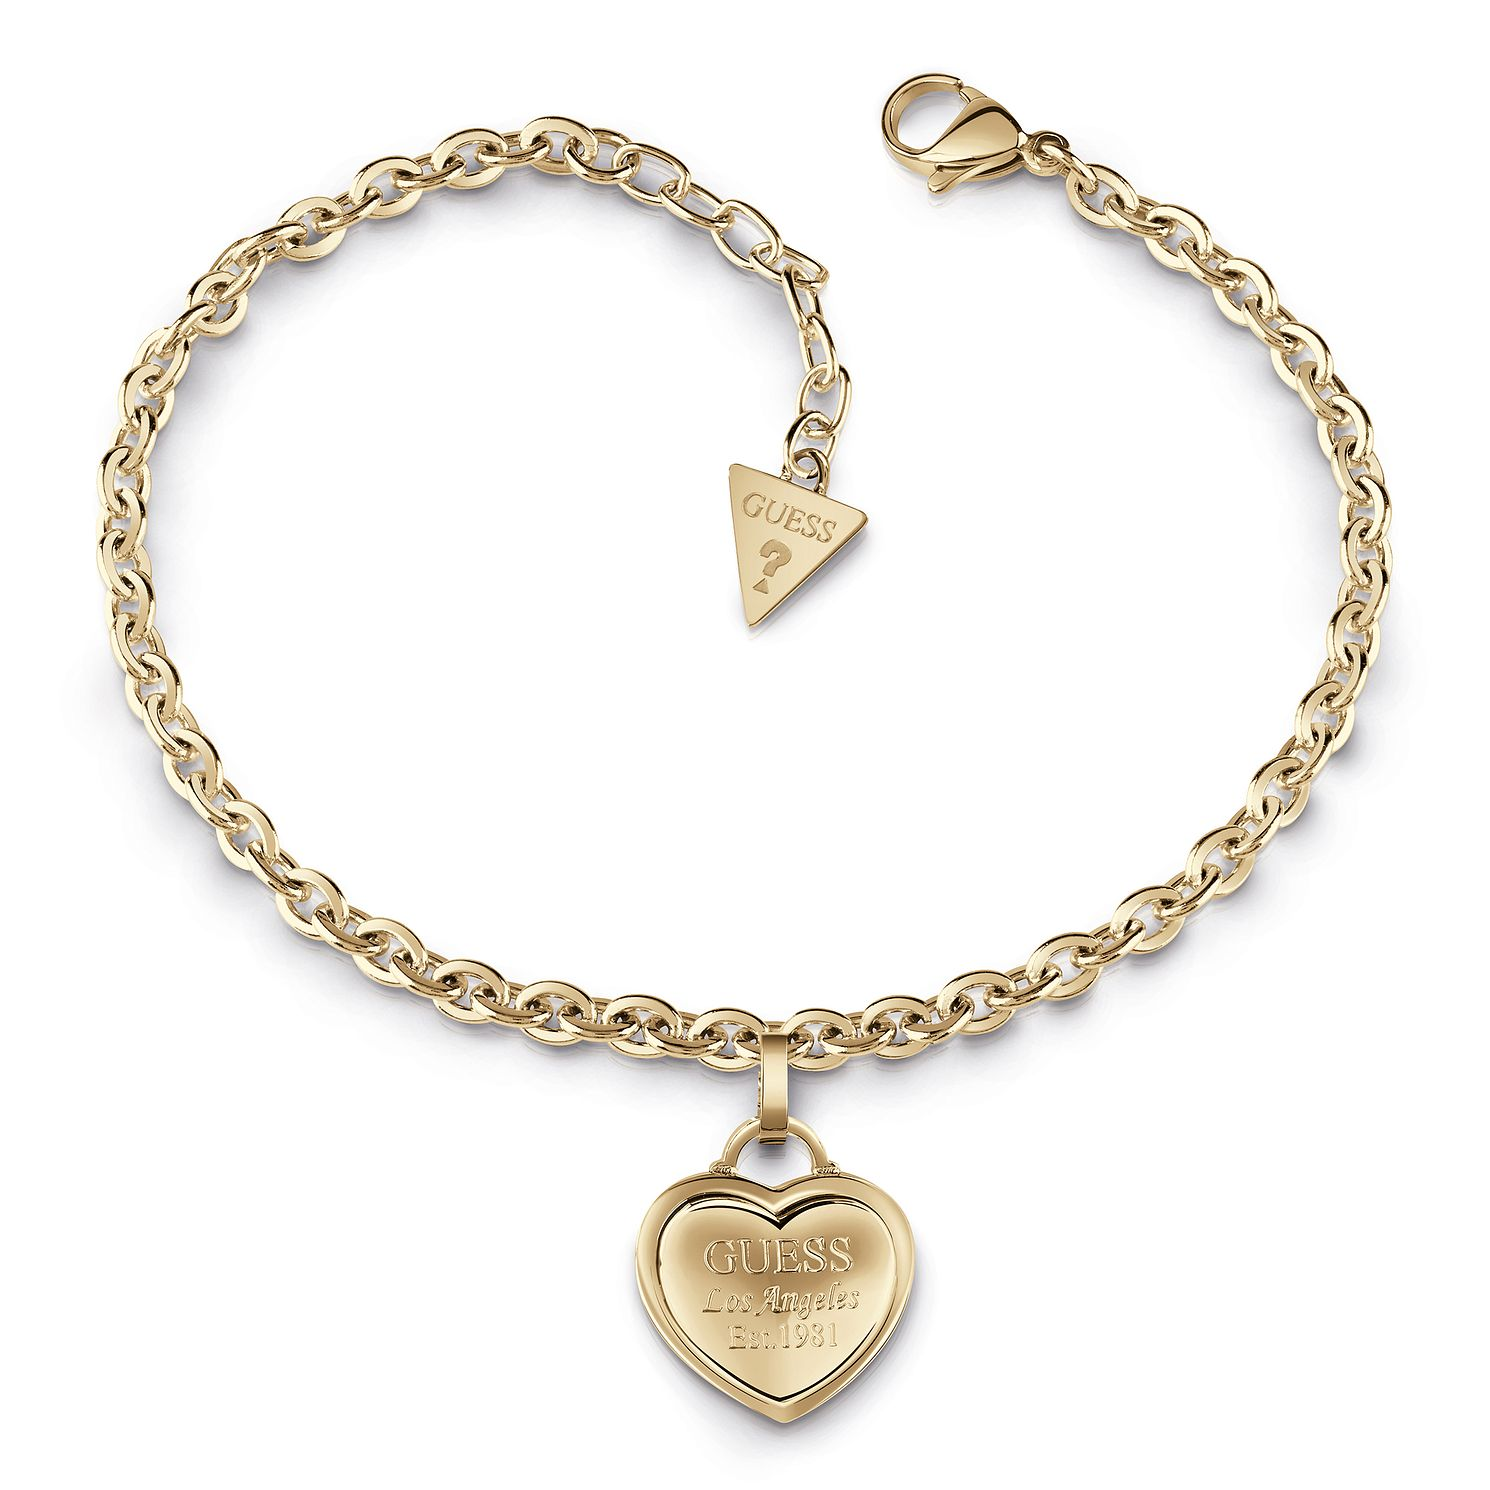 Guess Gold Plated Heart Charm Bracelet - Product number 1082574